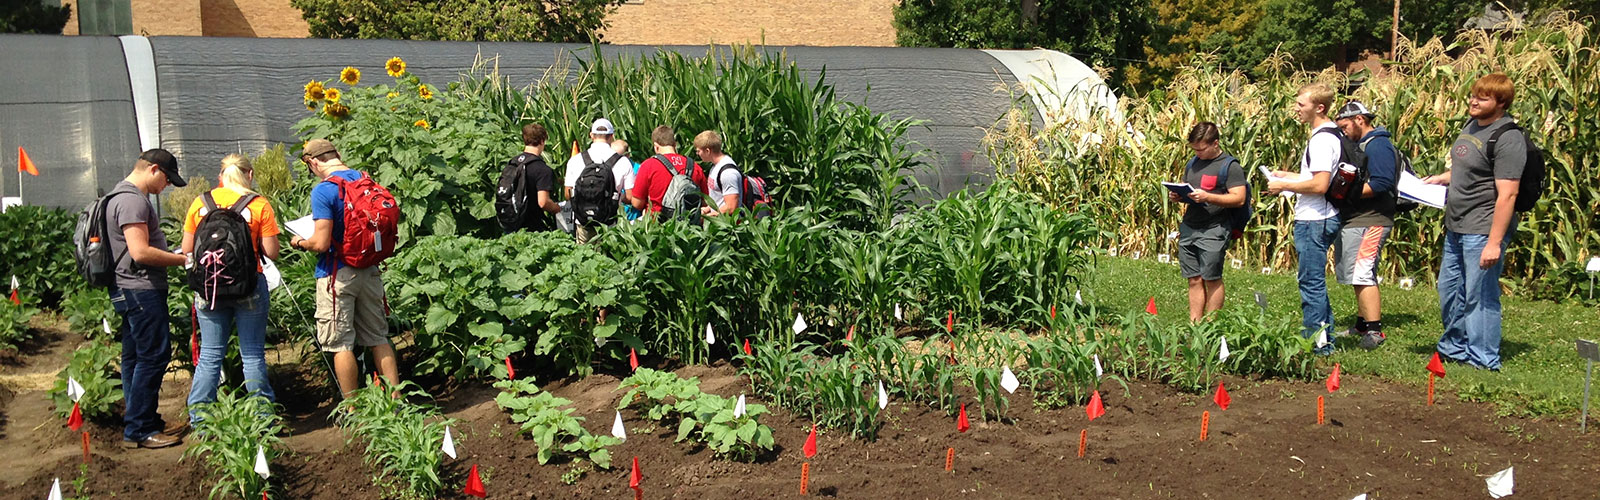 Future Undergraduates Teaching Garden